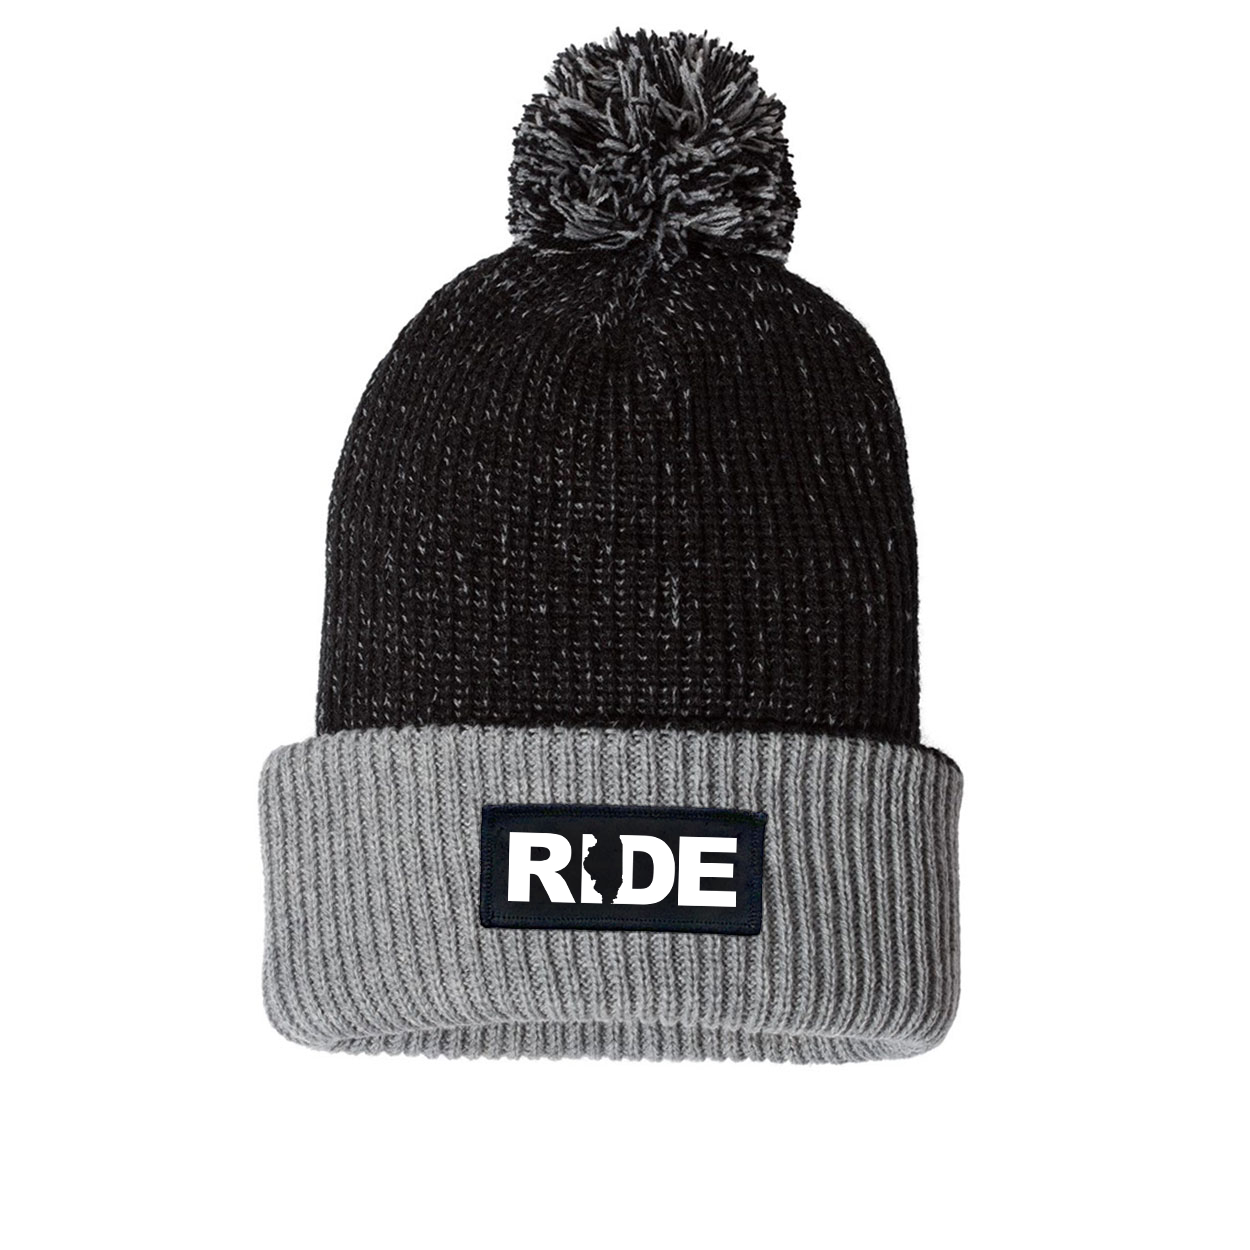 Ride Illinois Night Out Woven Patch Roll Up Pom Knit Beanie Black/Gray (White Logo)